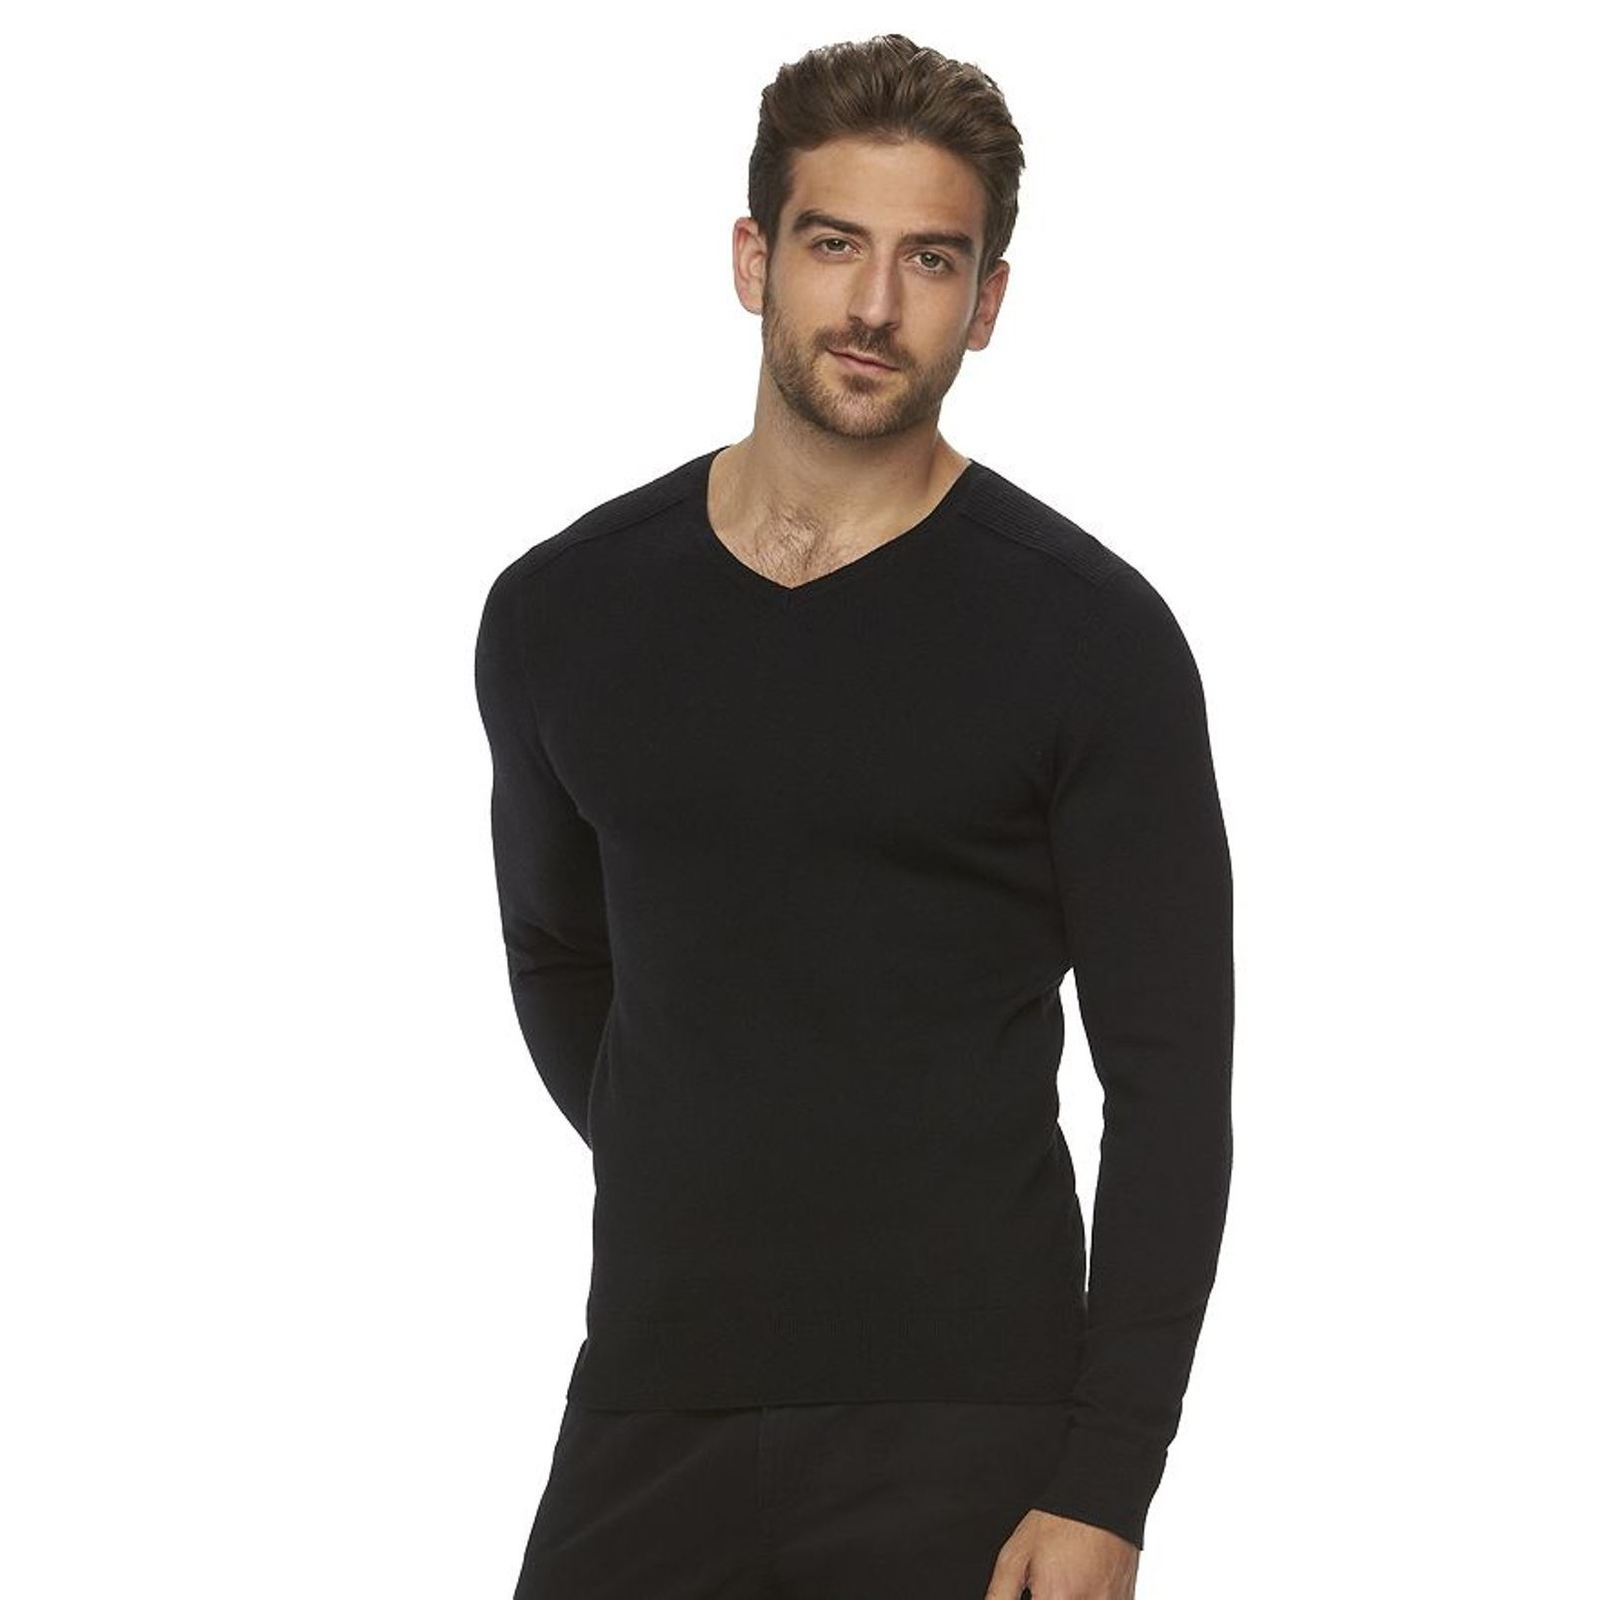 Marc Anthony Big & Tall Men's Slim-Fit Solid Black V-Neck Sweater New $70